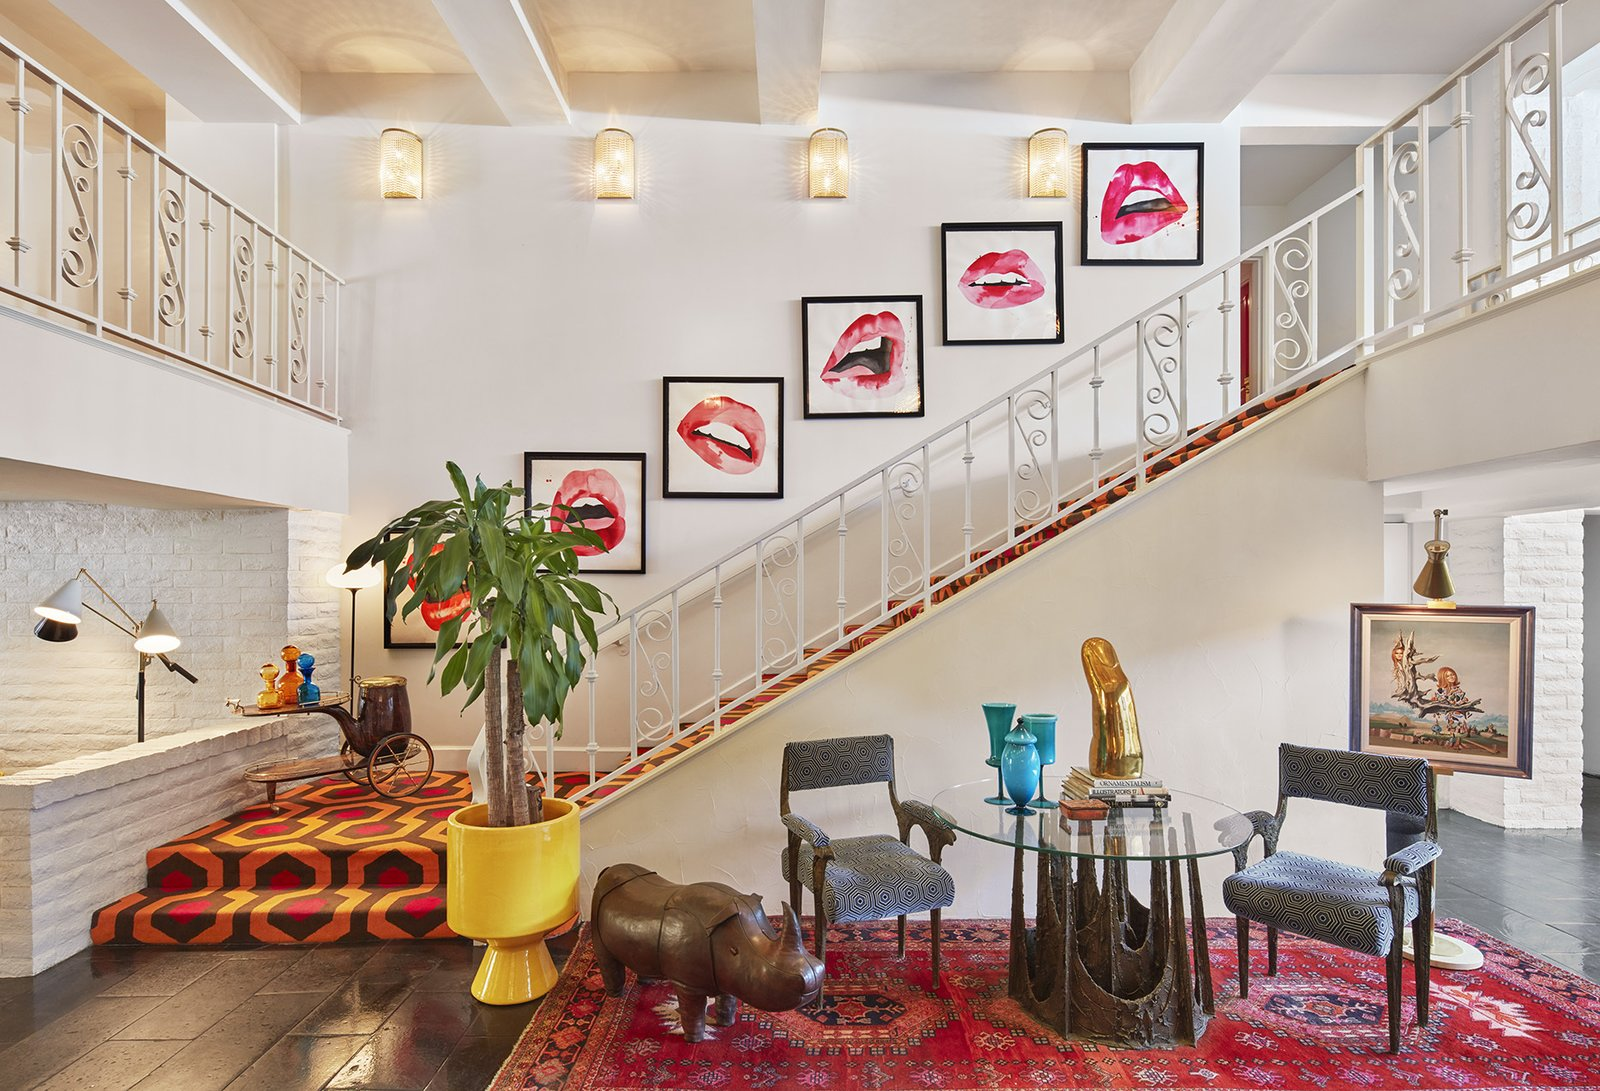 Jonathan adler reveals his redesign of the parker palm for Palm springs interior design style